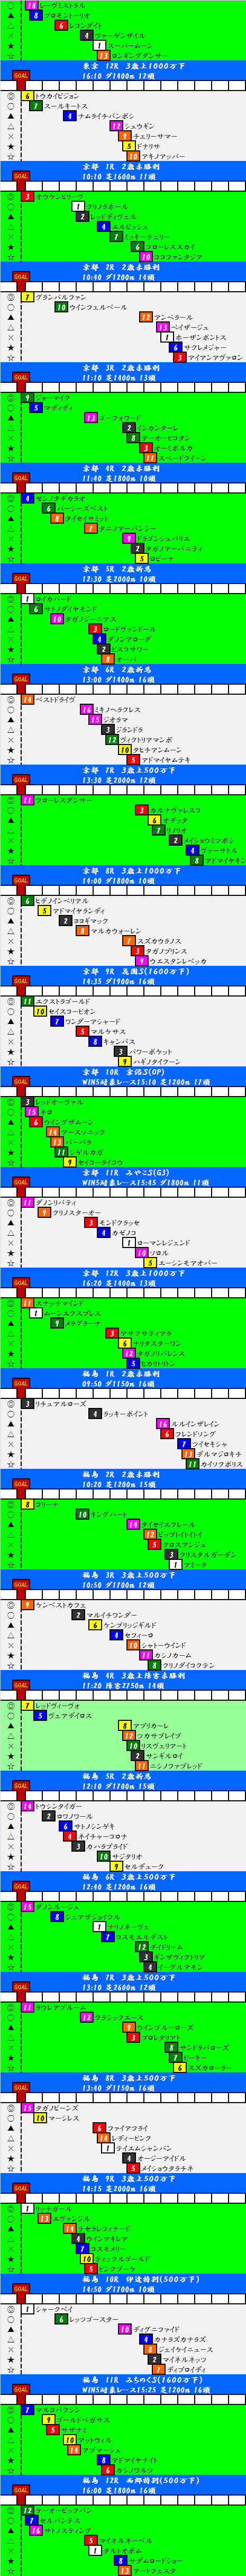 2015110802.png